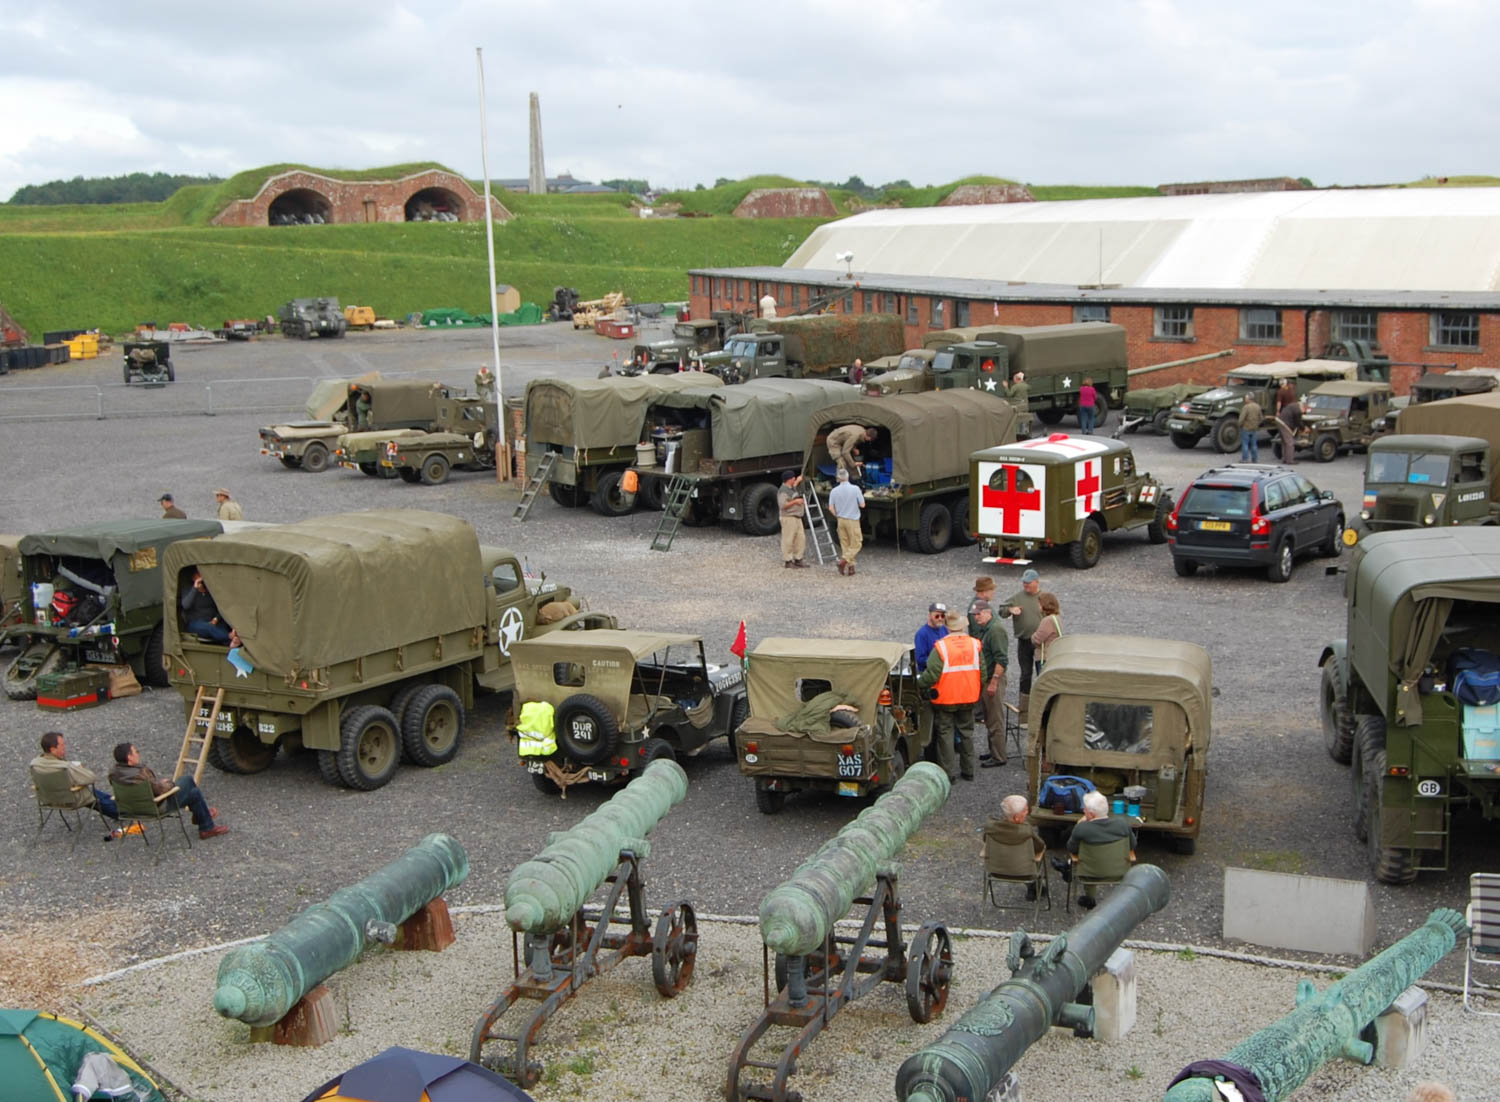 Members of the Military Vehicle Trust gather at Fort Nelson near Portsmouth in the UK before crossing to England.